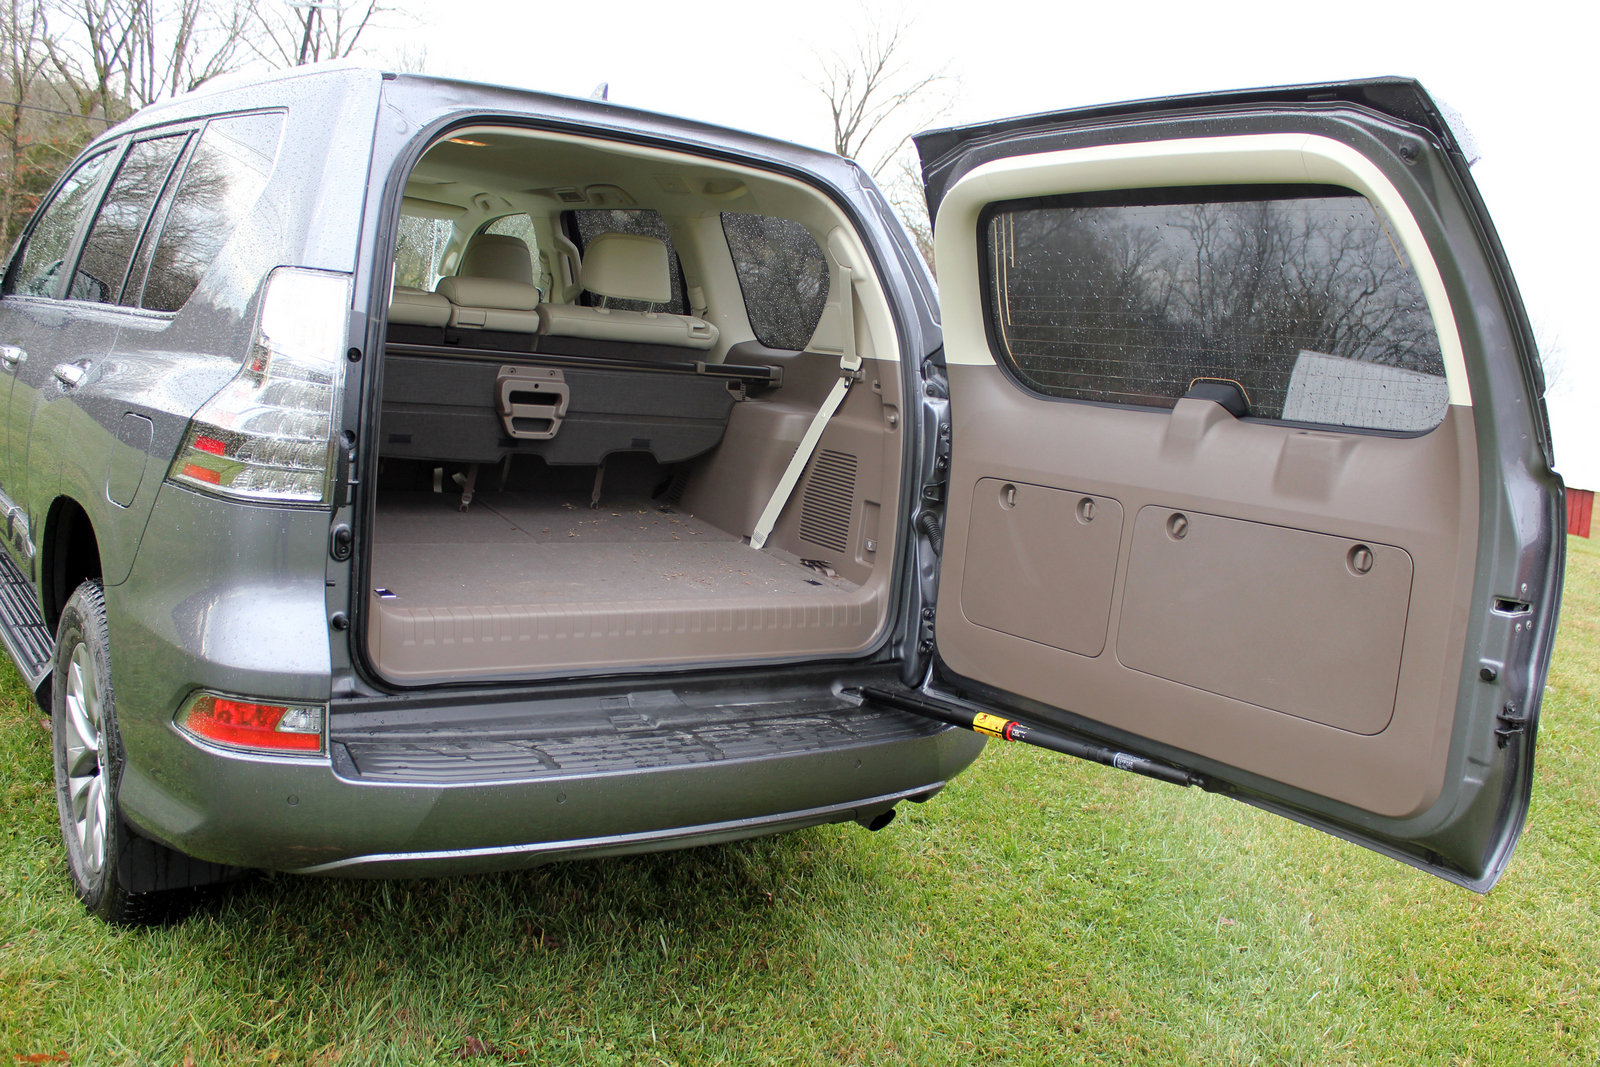 2015 lexus gx 460 driven picture 608247 car review top speed. Black Bedroom Furniture Sets. Home Design Ideas